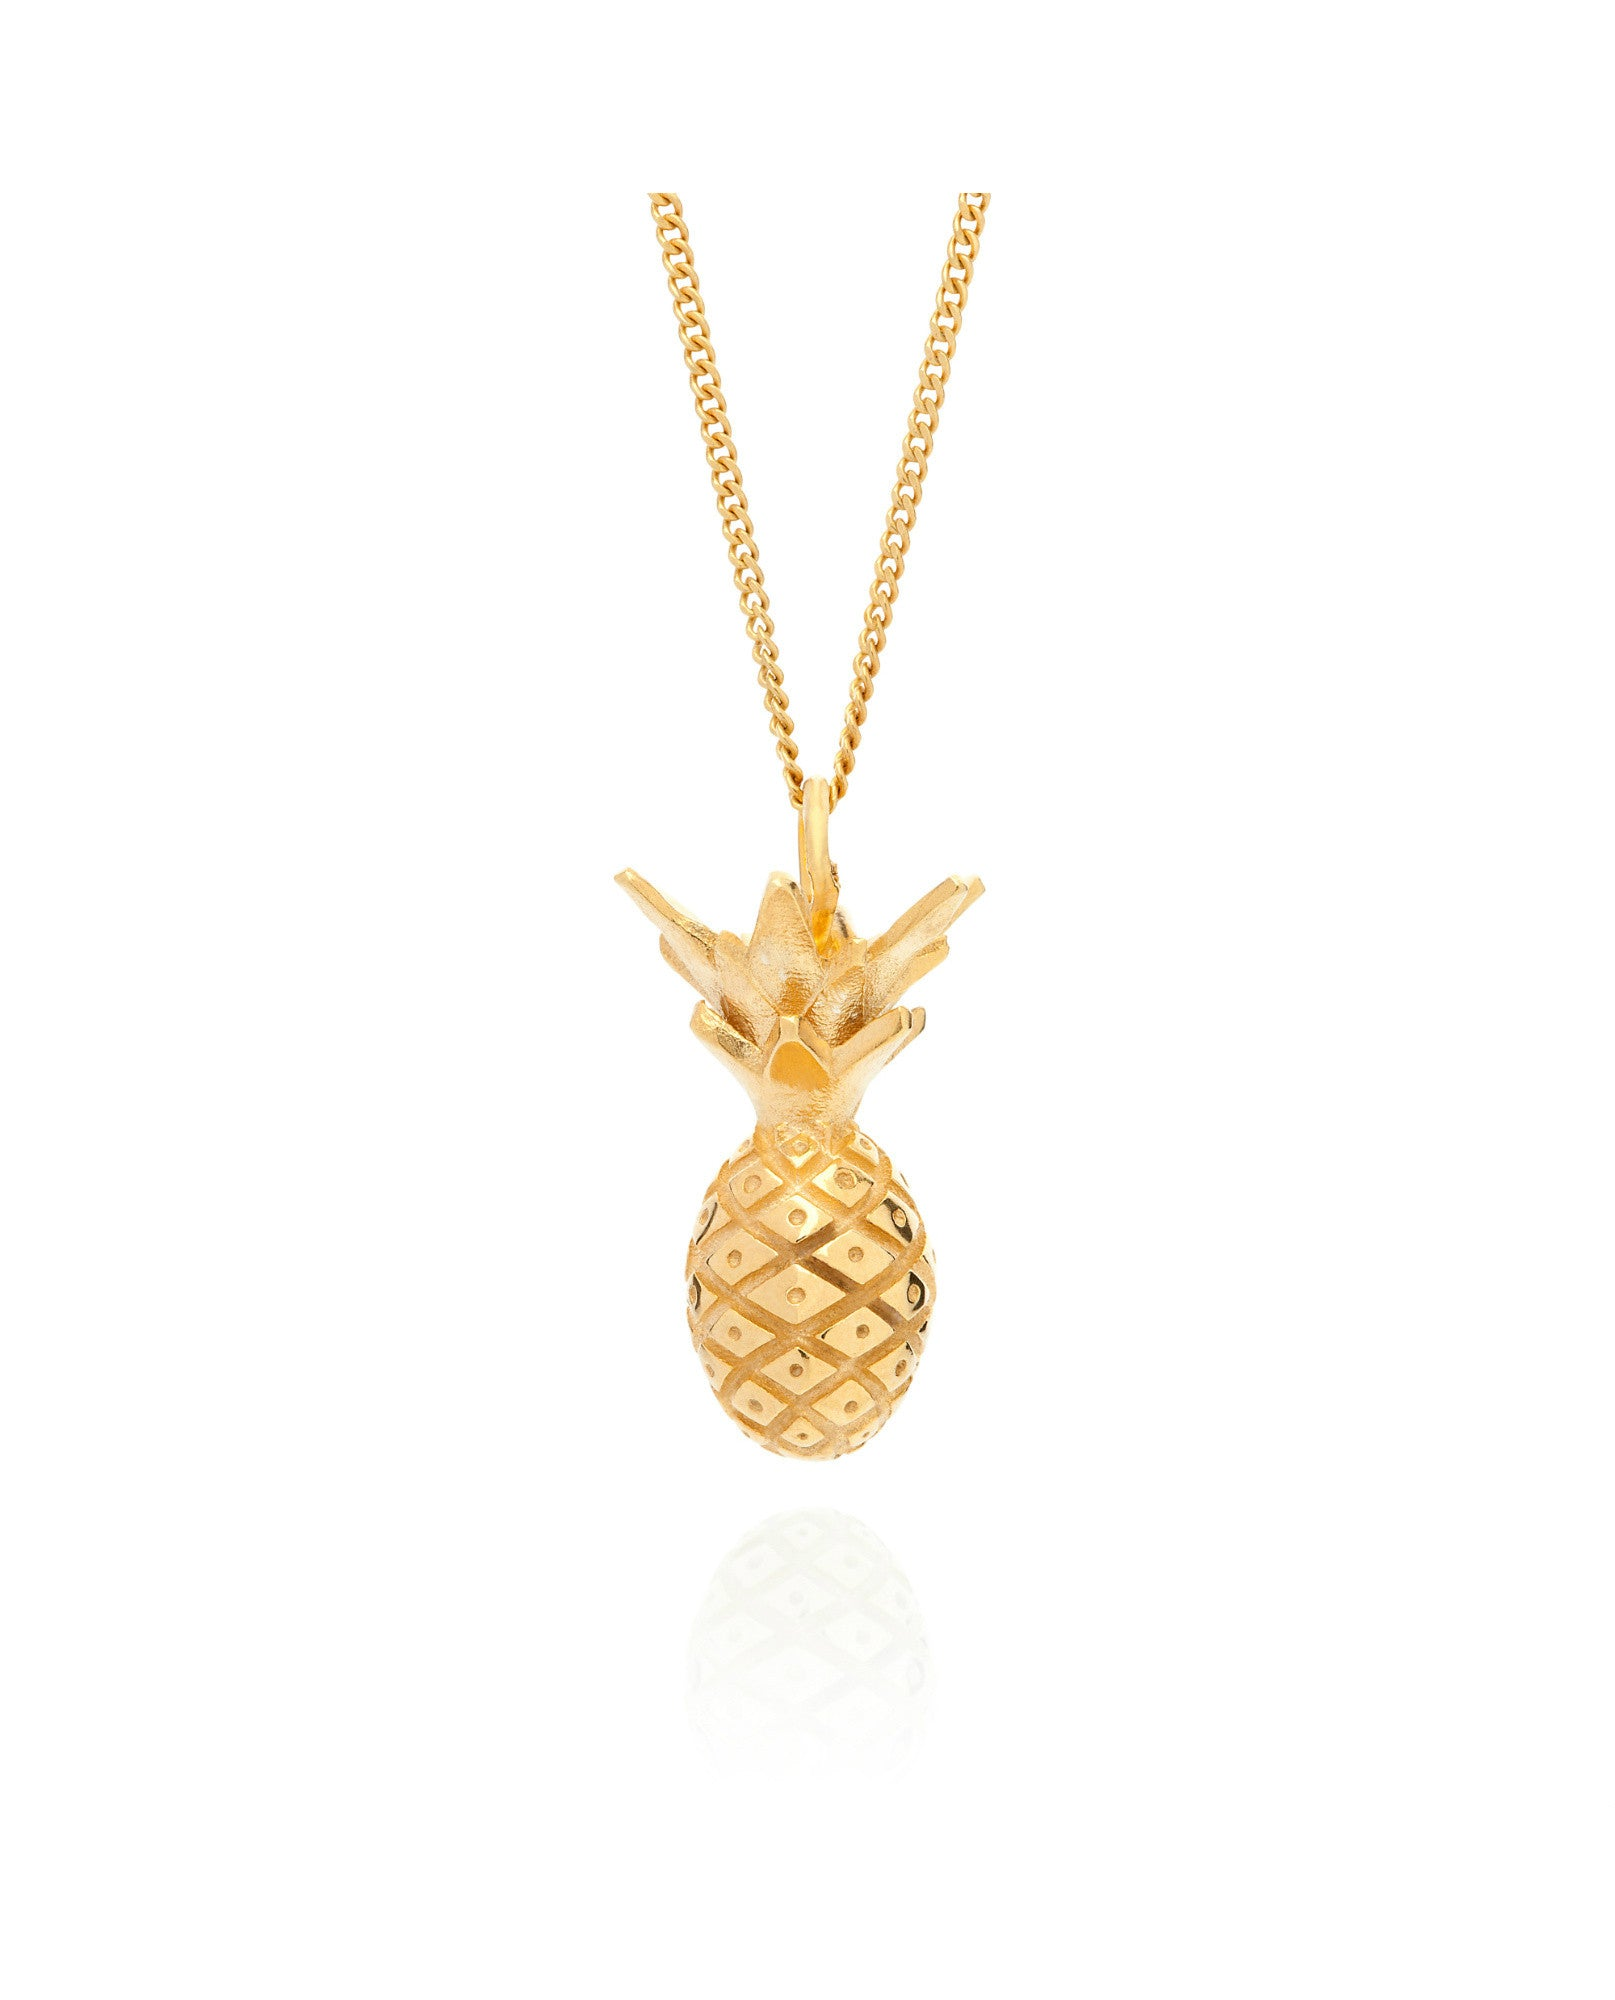 Lee Renée - Pineapple Necklace - The Velvet Closet